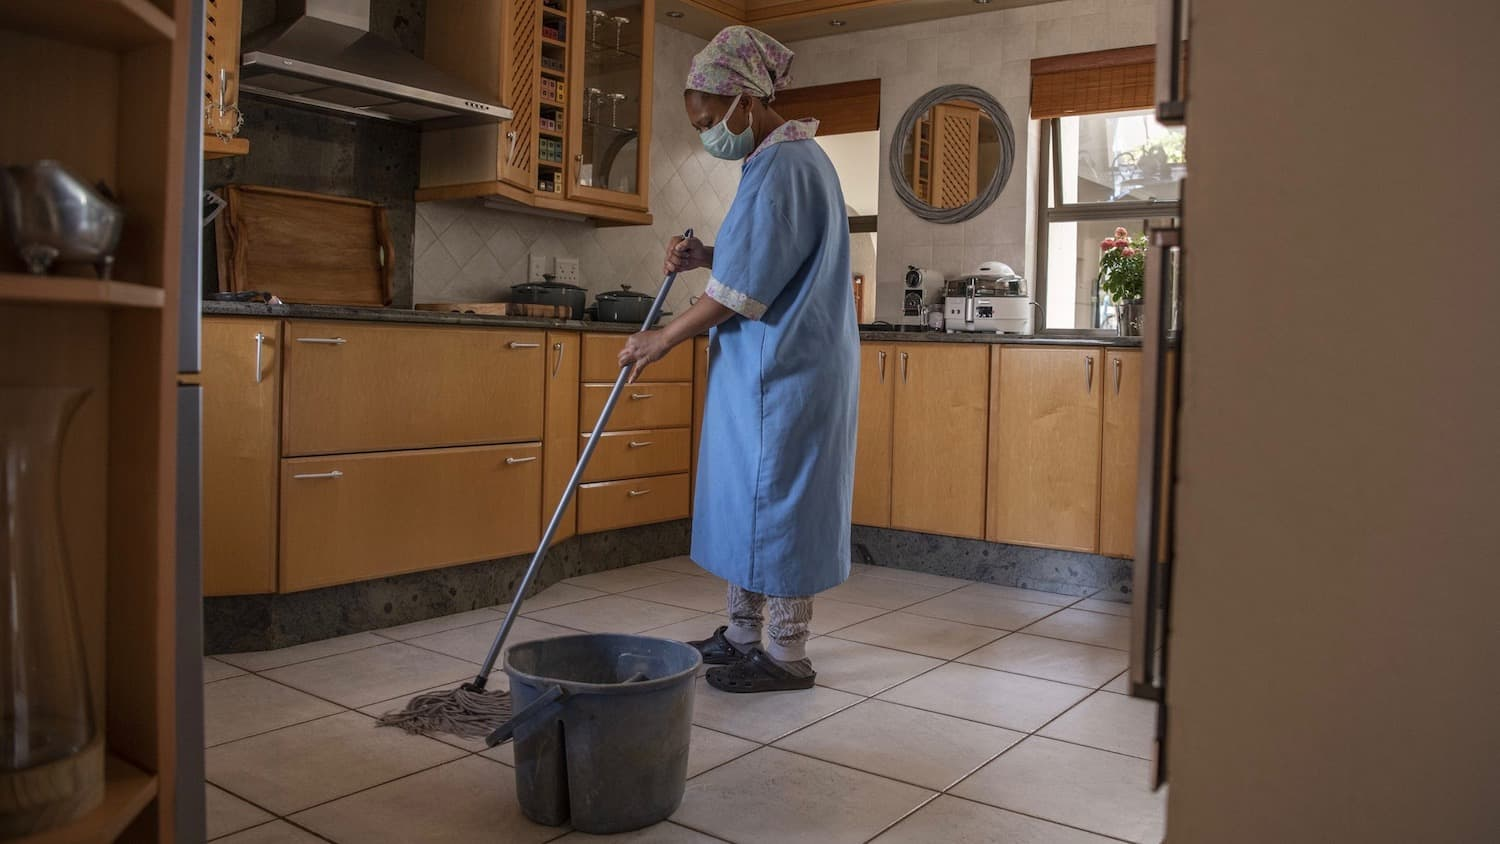 Domestic Workers can claim for being Injured On Duty